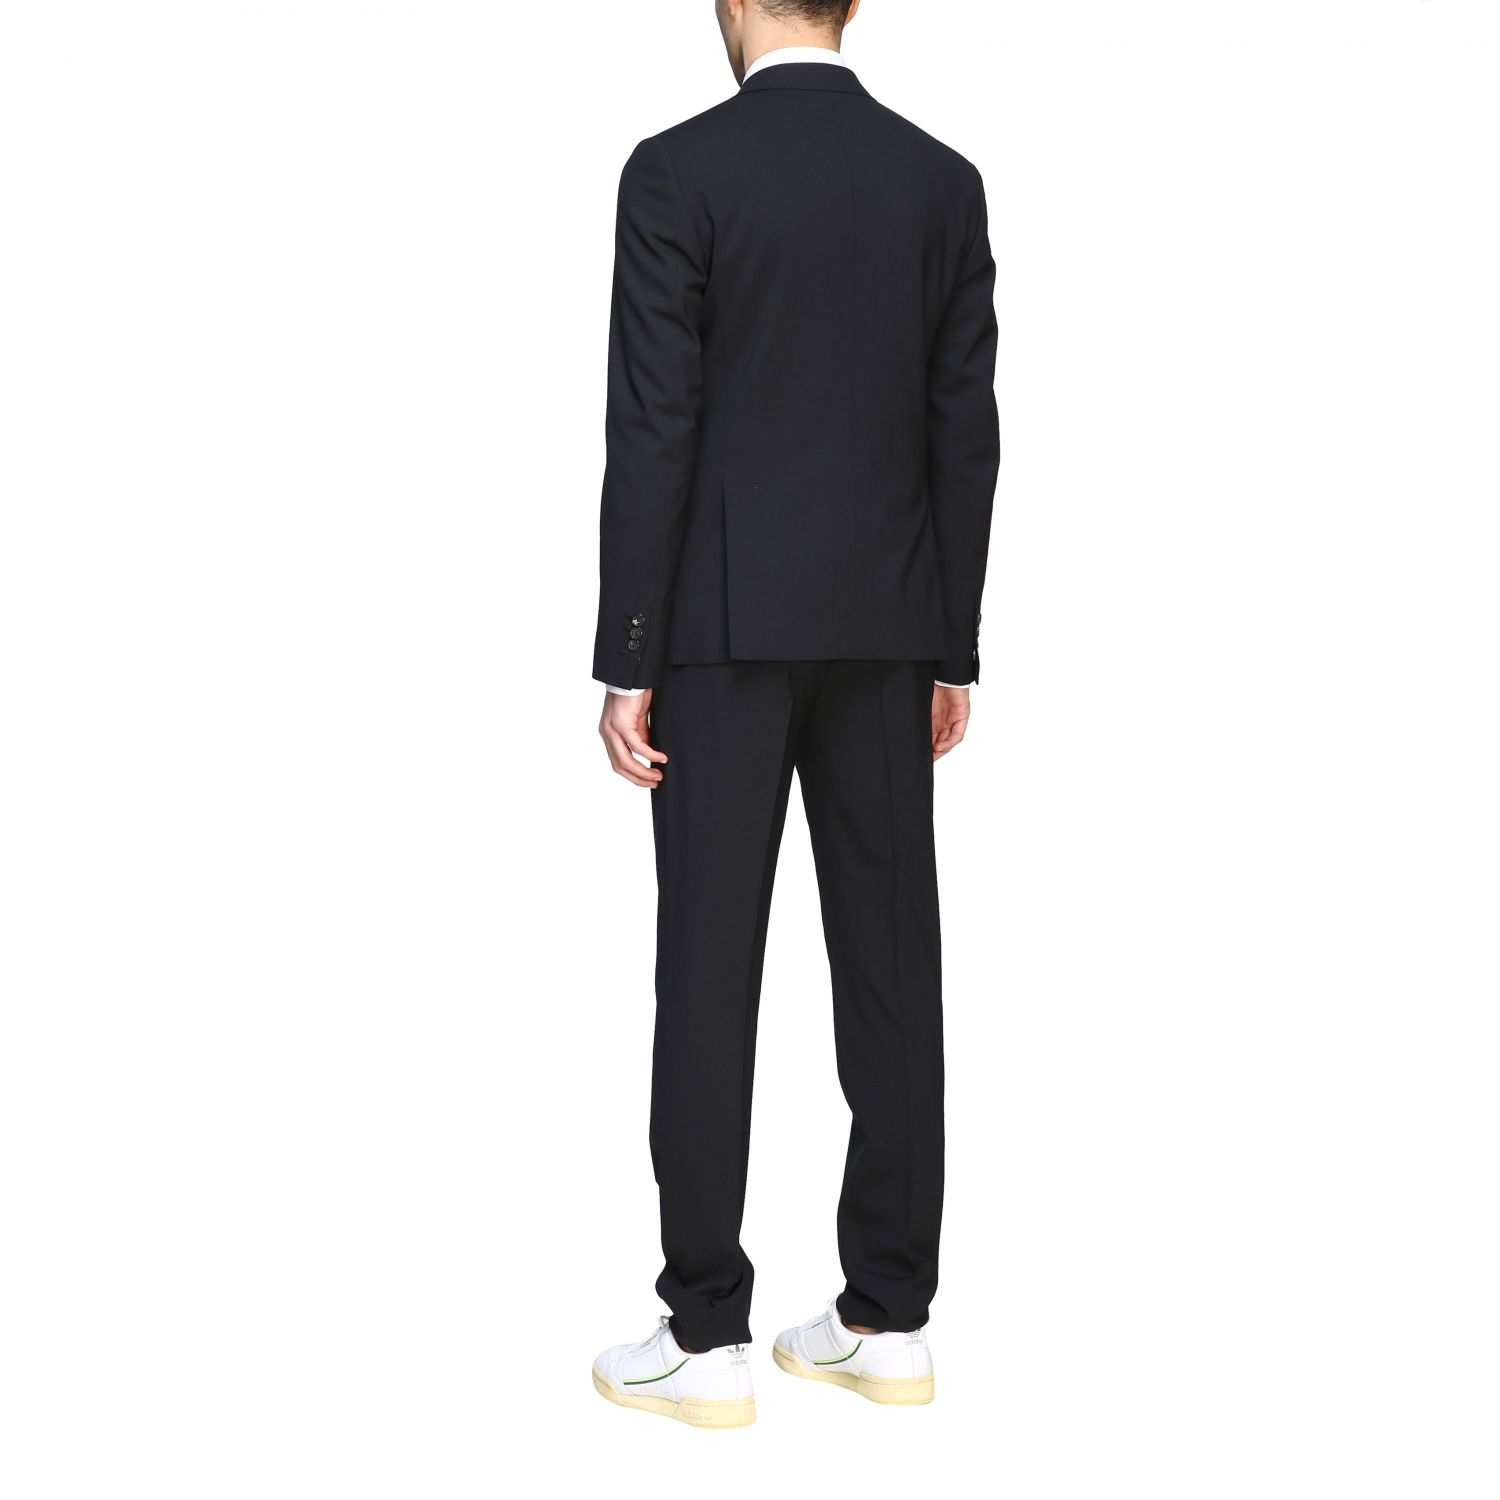 Suit Dsquared2: Dsquared2 suit in basic single-breasted virgin wool blend black 3